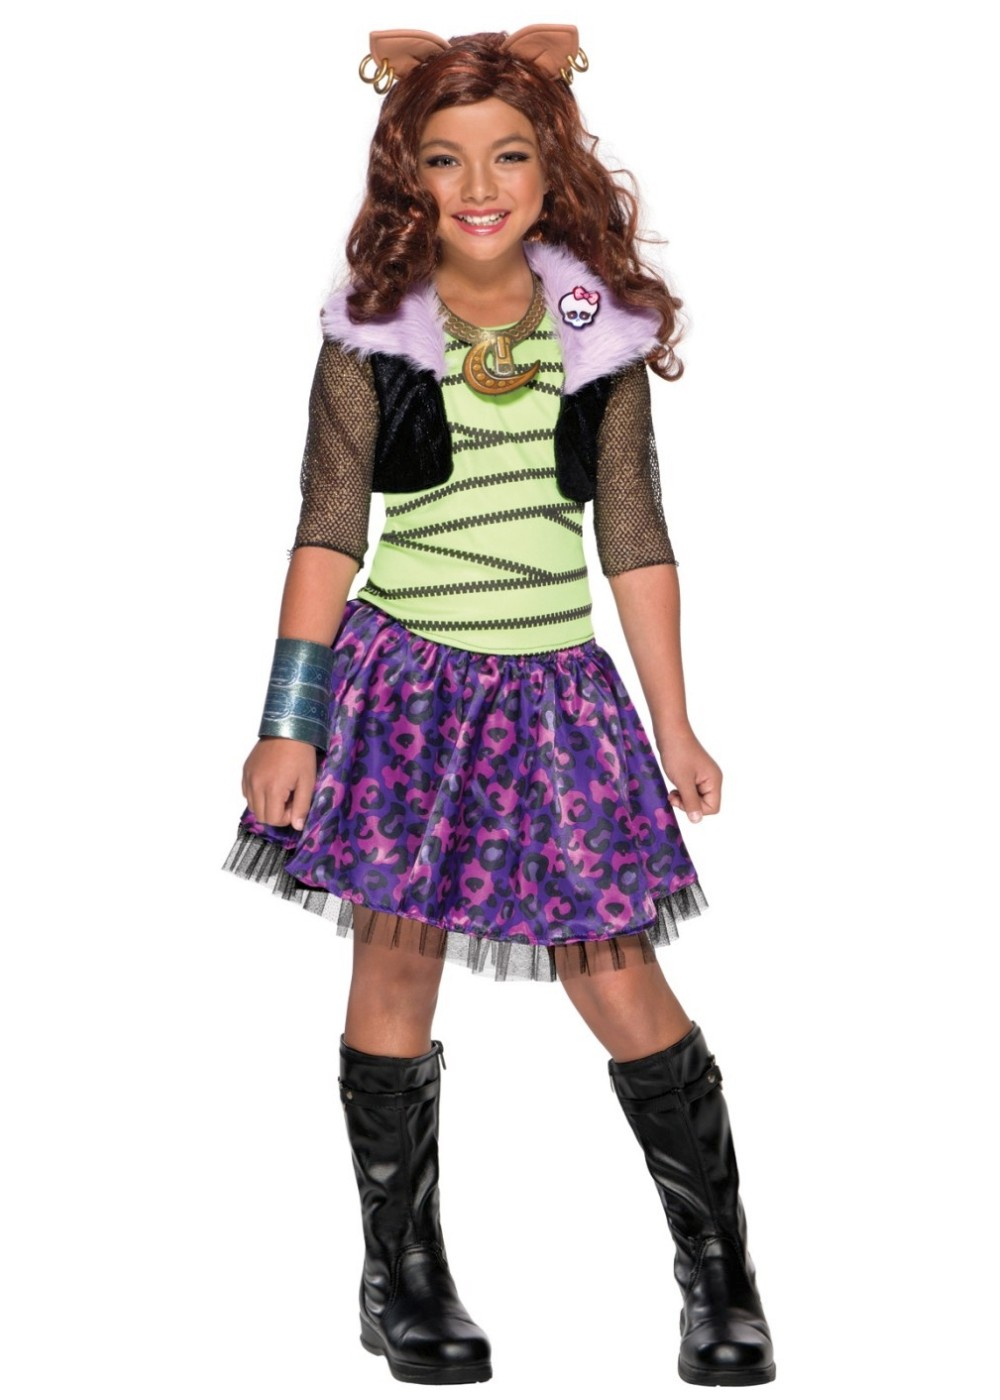 Monster High Clawdeen Wolf Girls Costume  sc 1 st  Wonder Costumes & Monster High Clawdeen Wolf Girls Costume - Cosplay Costumes